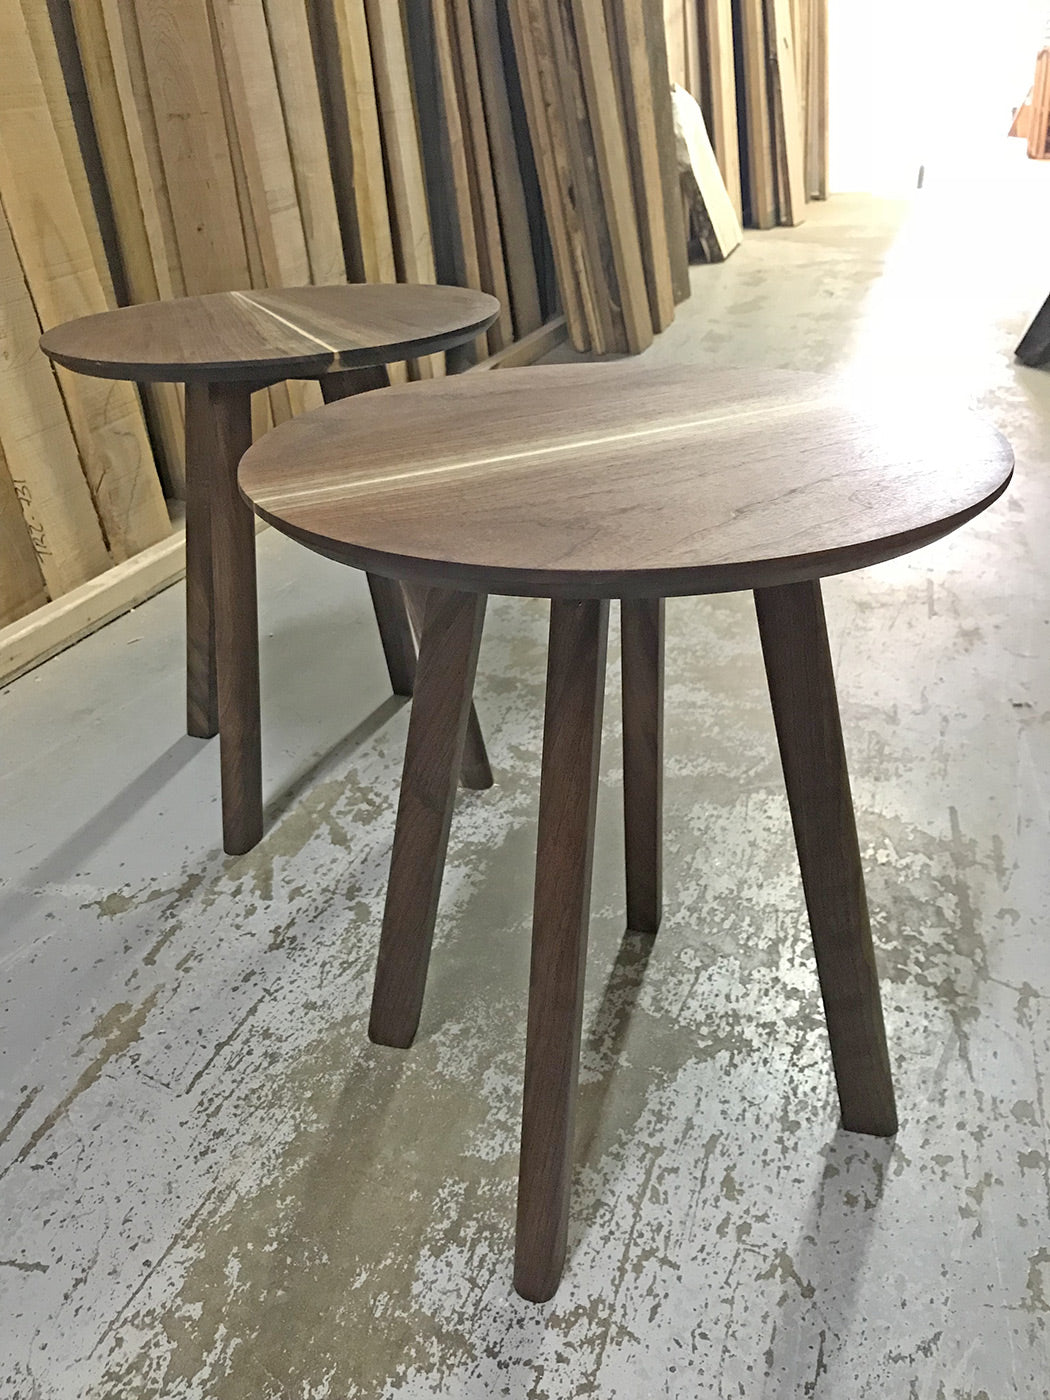 Mid-Century Inspired Side Table (Nov 14, 21, 28)